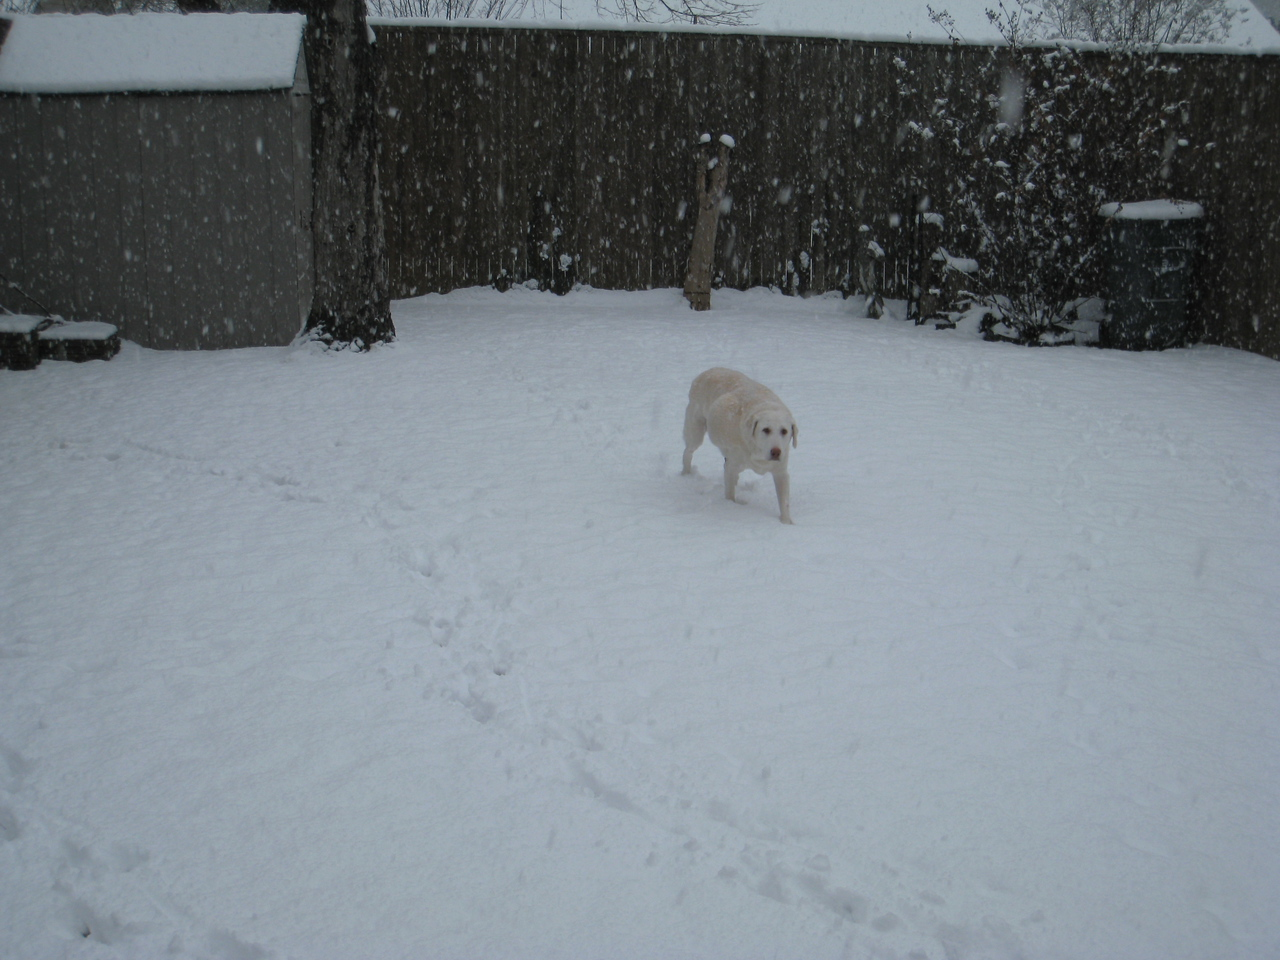 Murphy making trails in the snow.